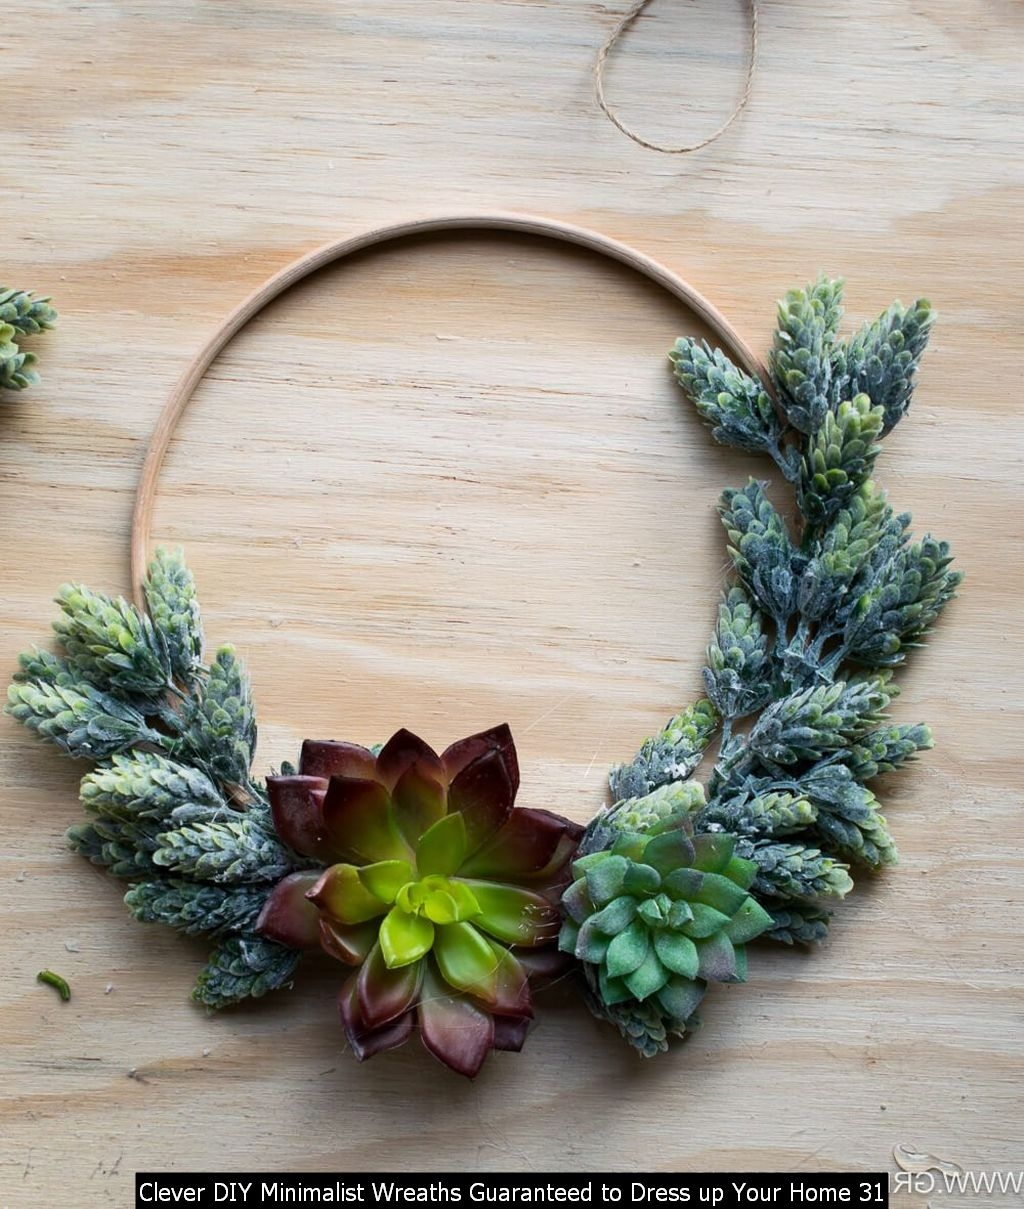 Clever DIY Minimalist Wreaths Guaranteed To Dress Up Your Home 31